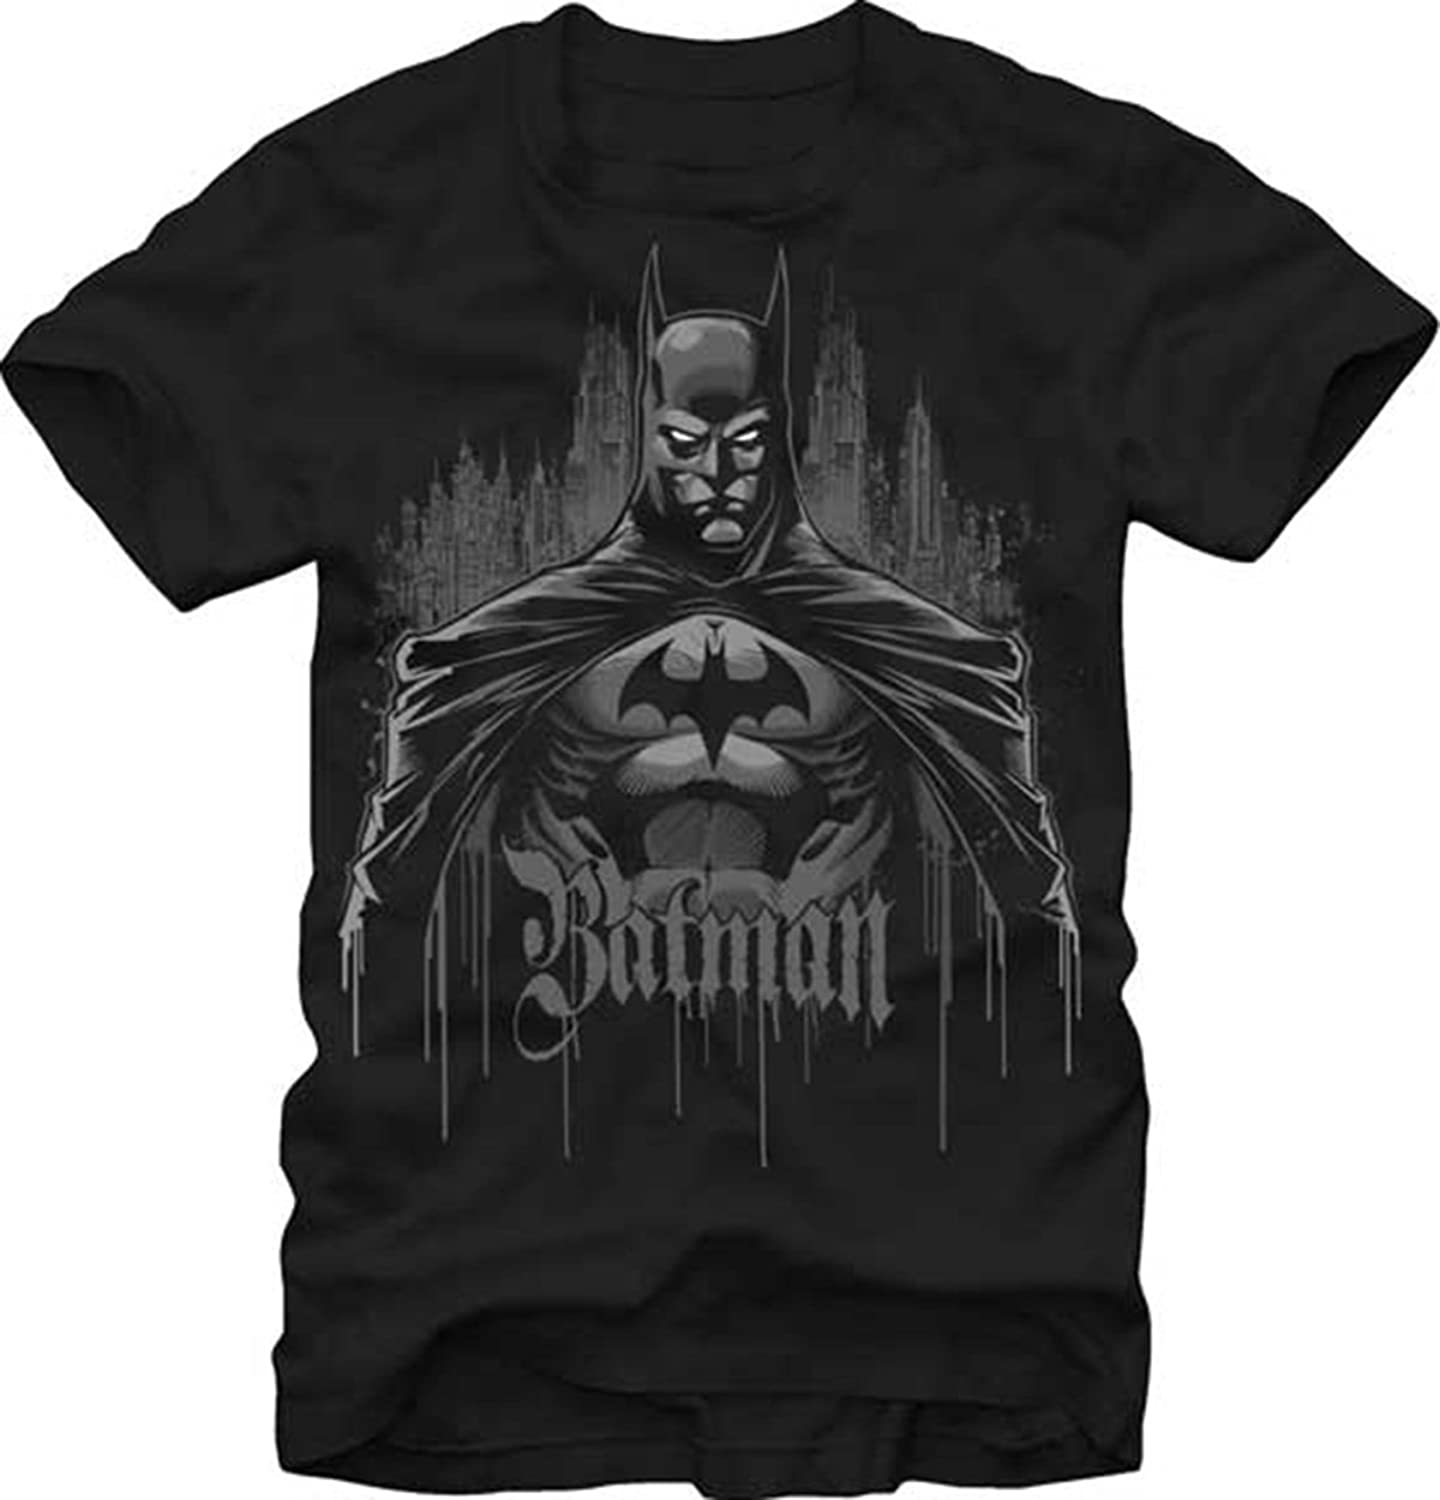 Black t shirt batman - Black T Shirt Batman 16